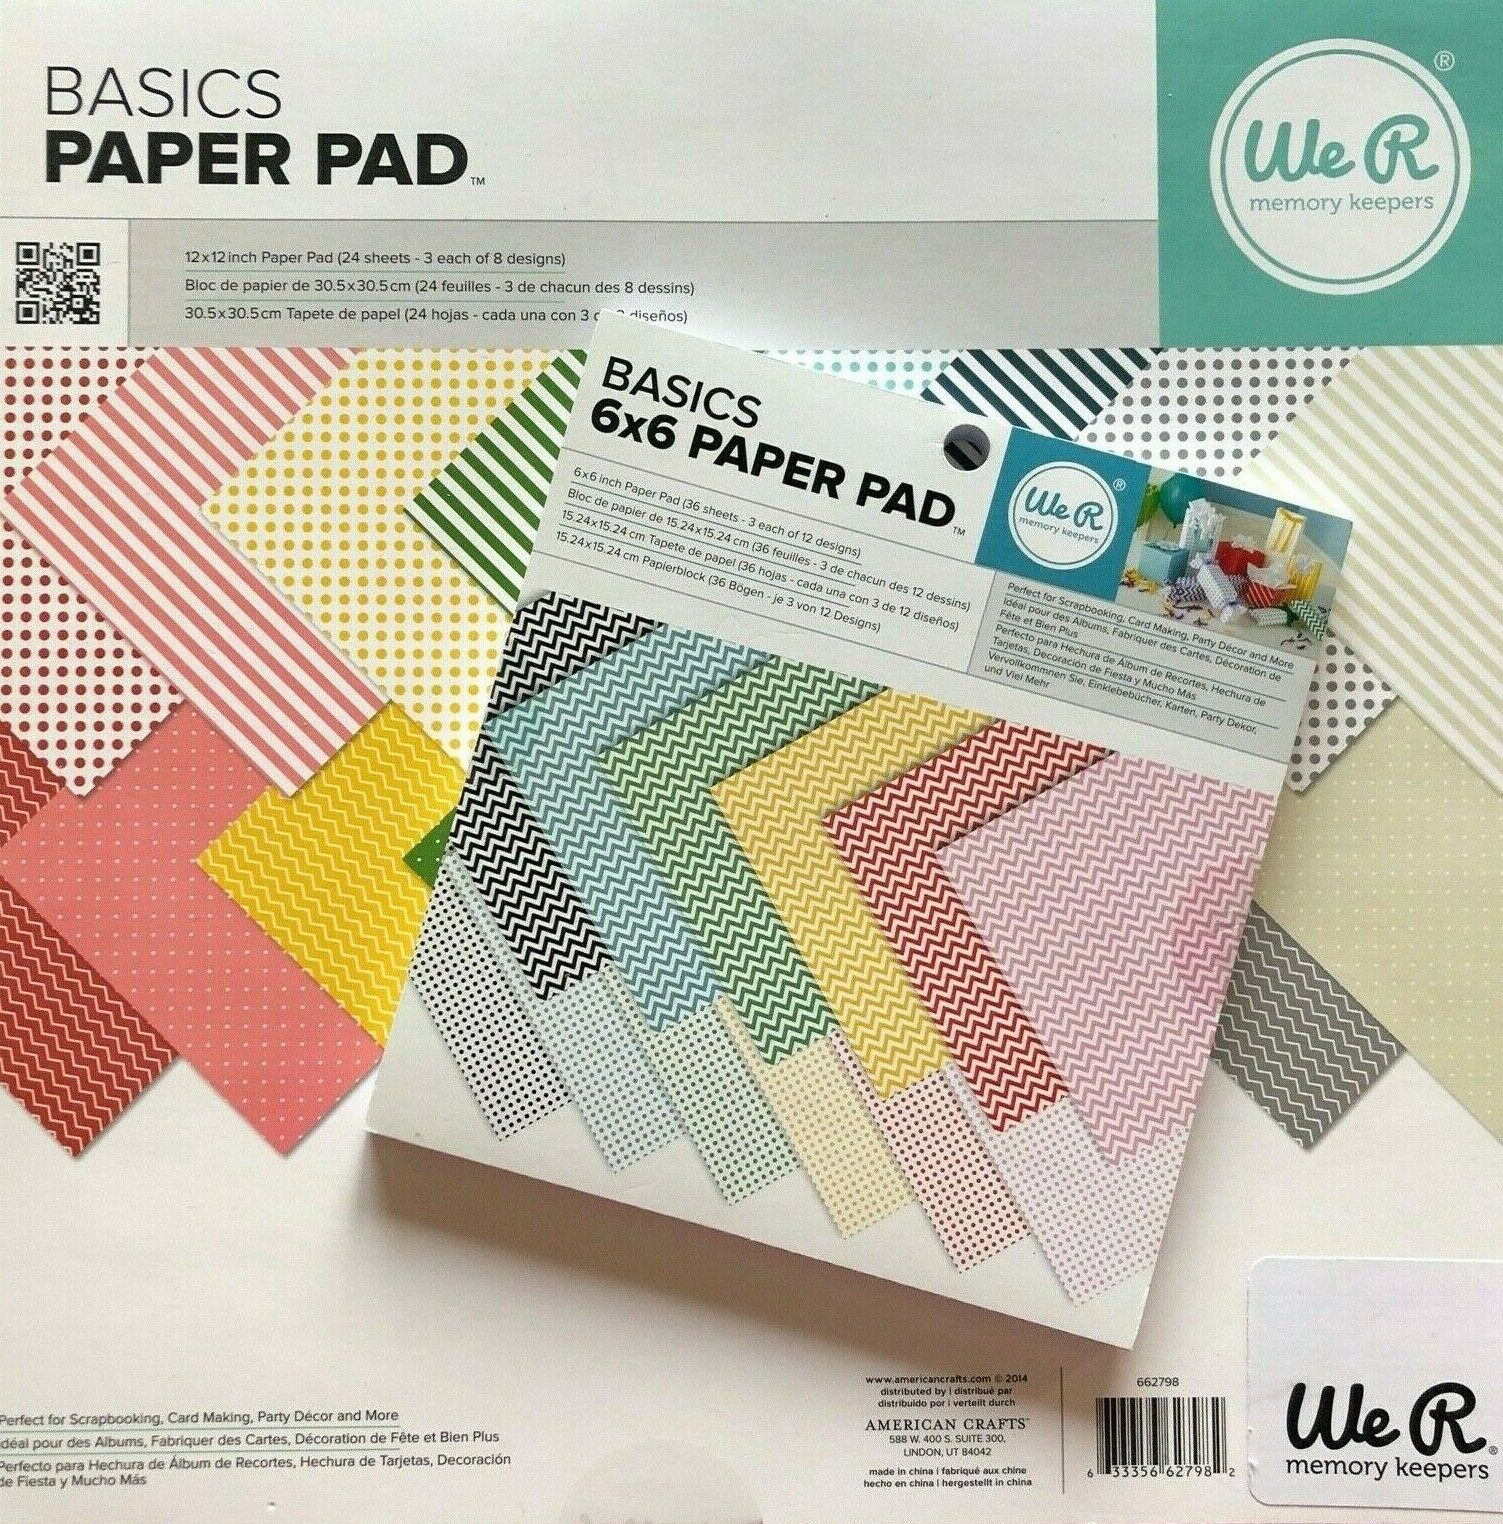 NEW CHOOSE 6x6 or 12x12 We R Memory Keepers Basics Paper Pads